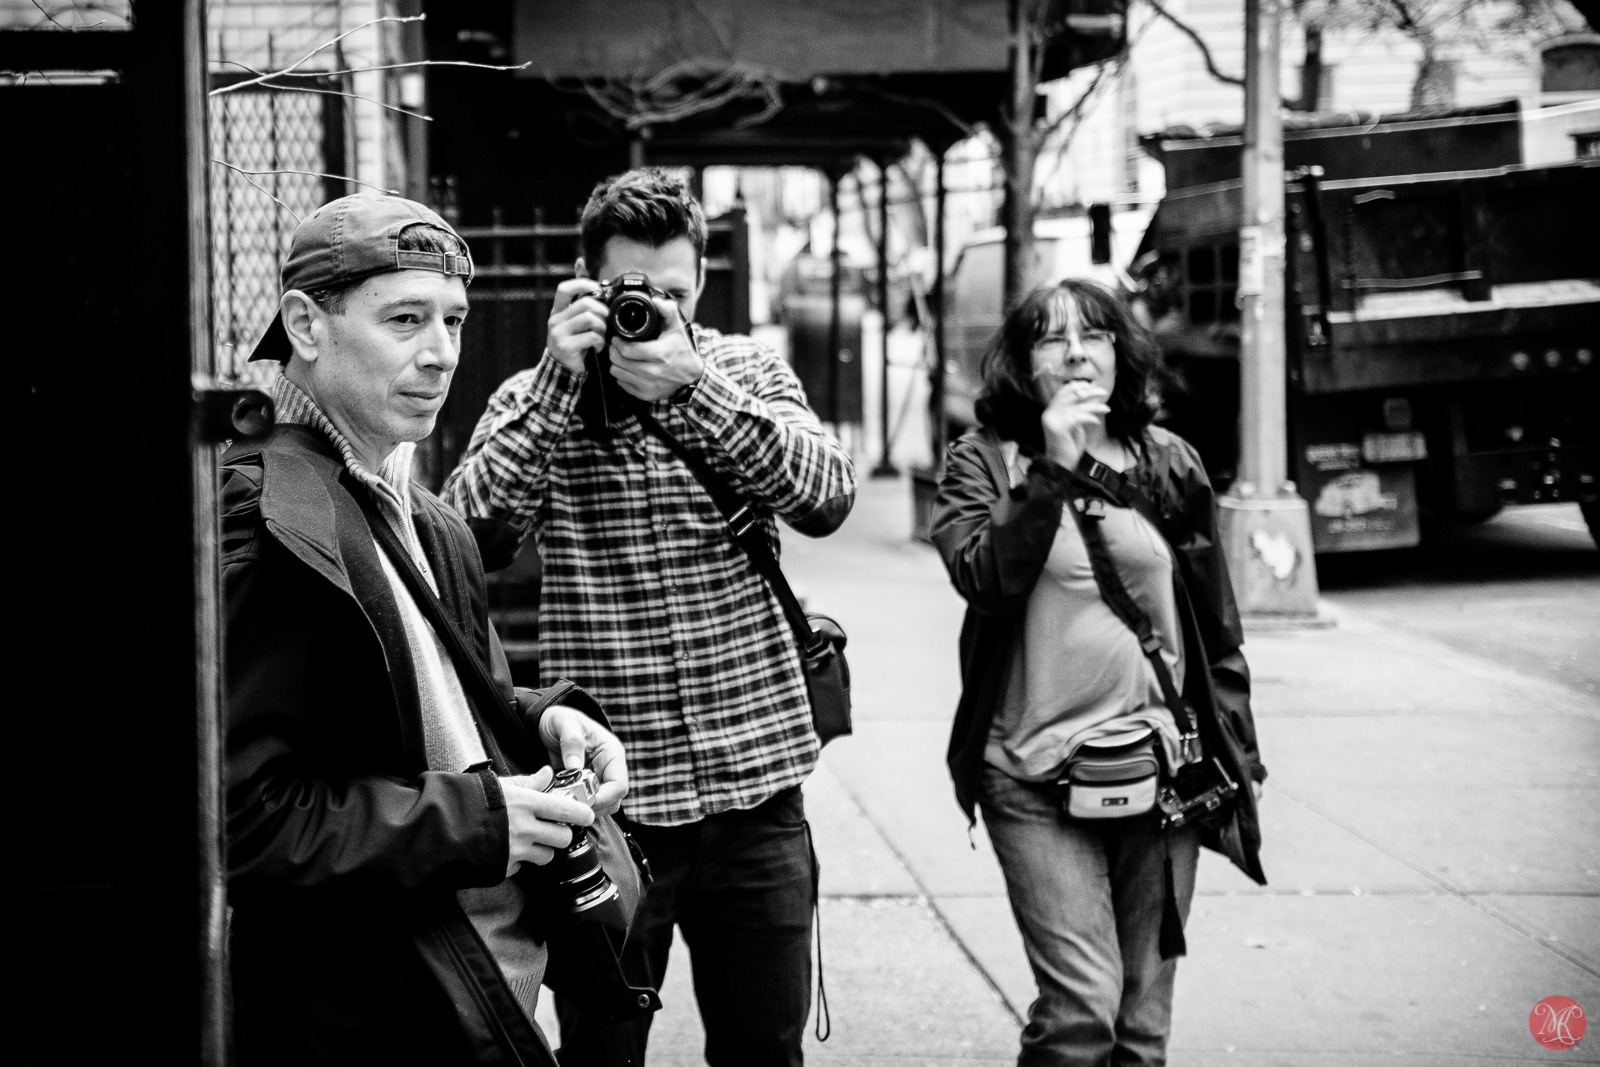 Street photography in New York